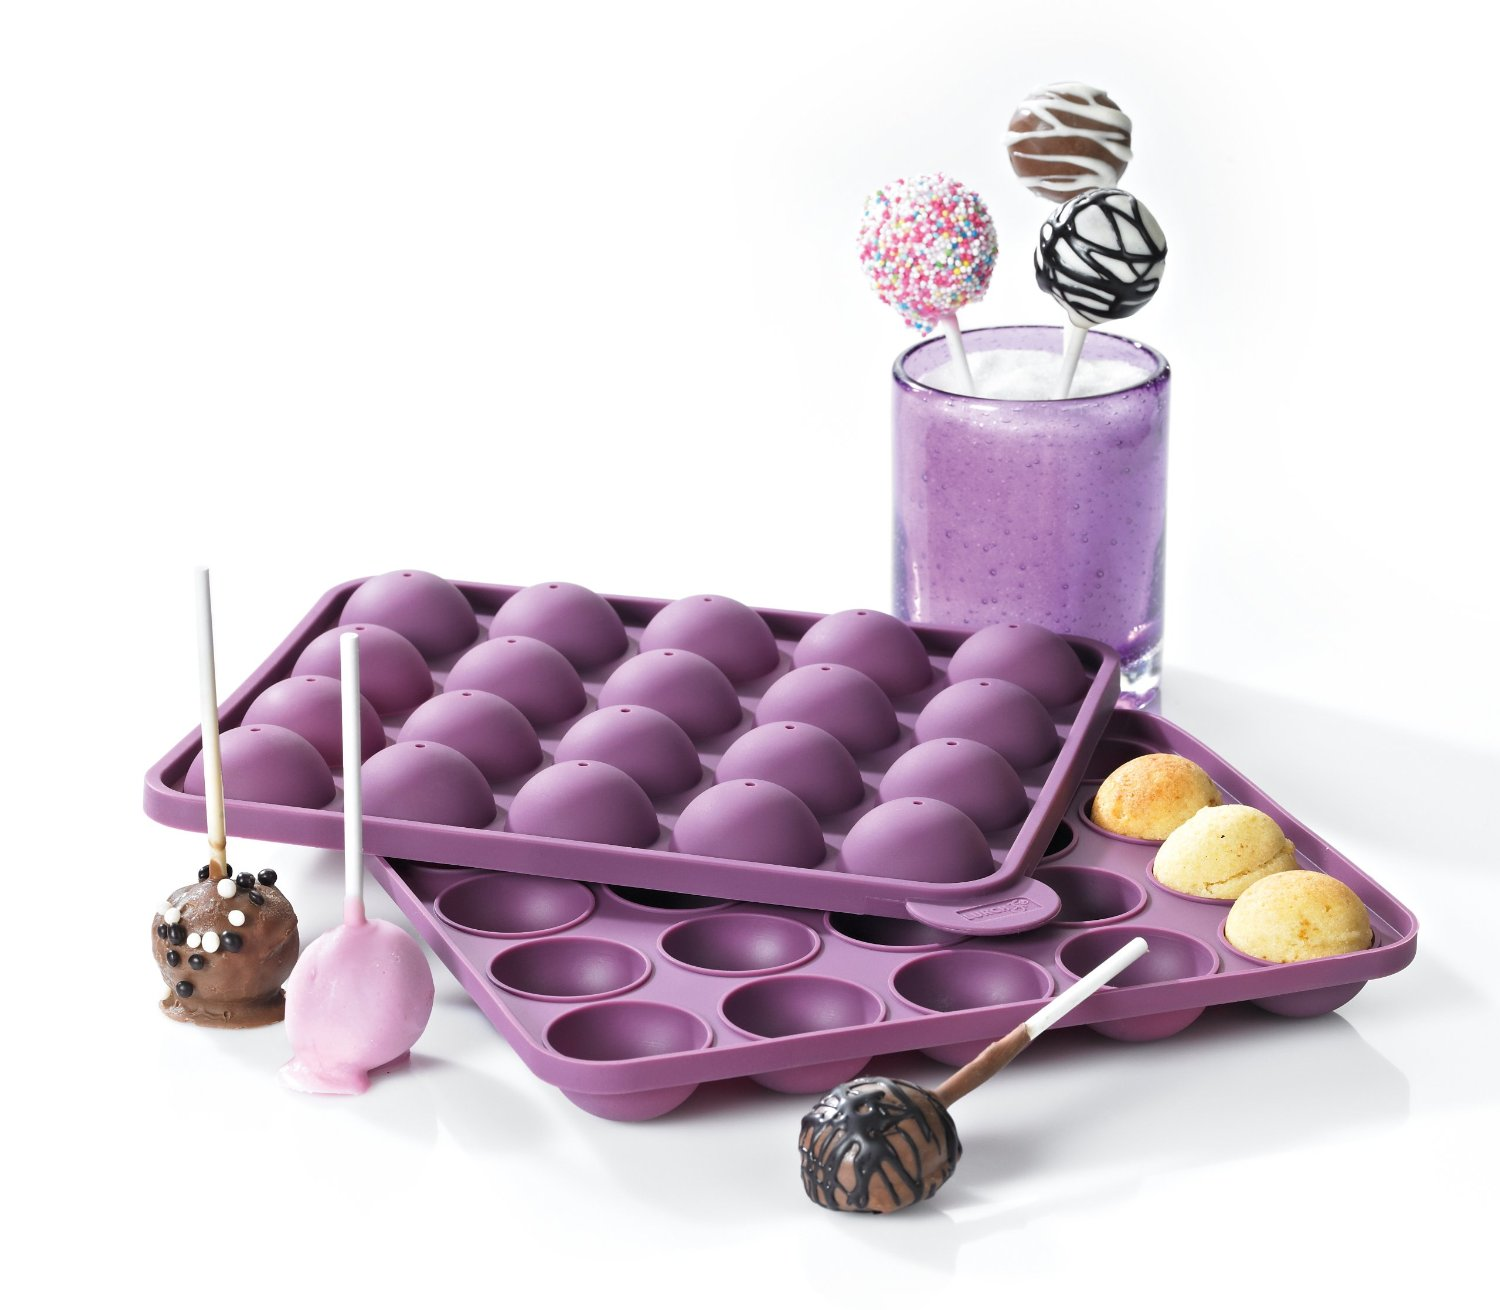 neu lurch flexiform backform cake pops kuchen kugeln kuchenlolli stiele. Black Bedroom Furniture Sets. Home Design Ideas